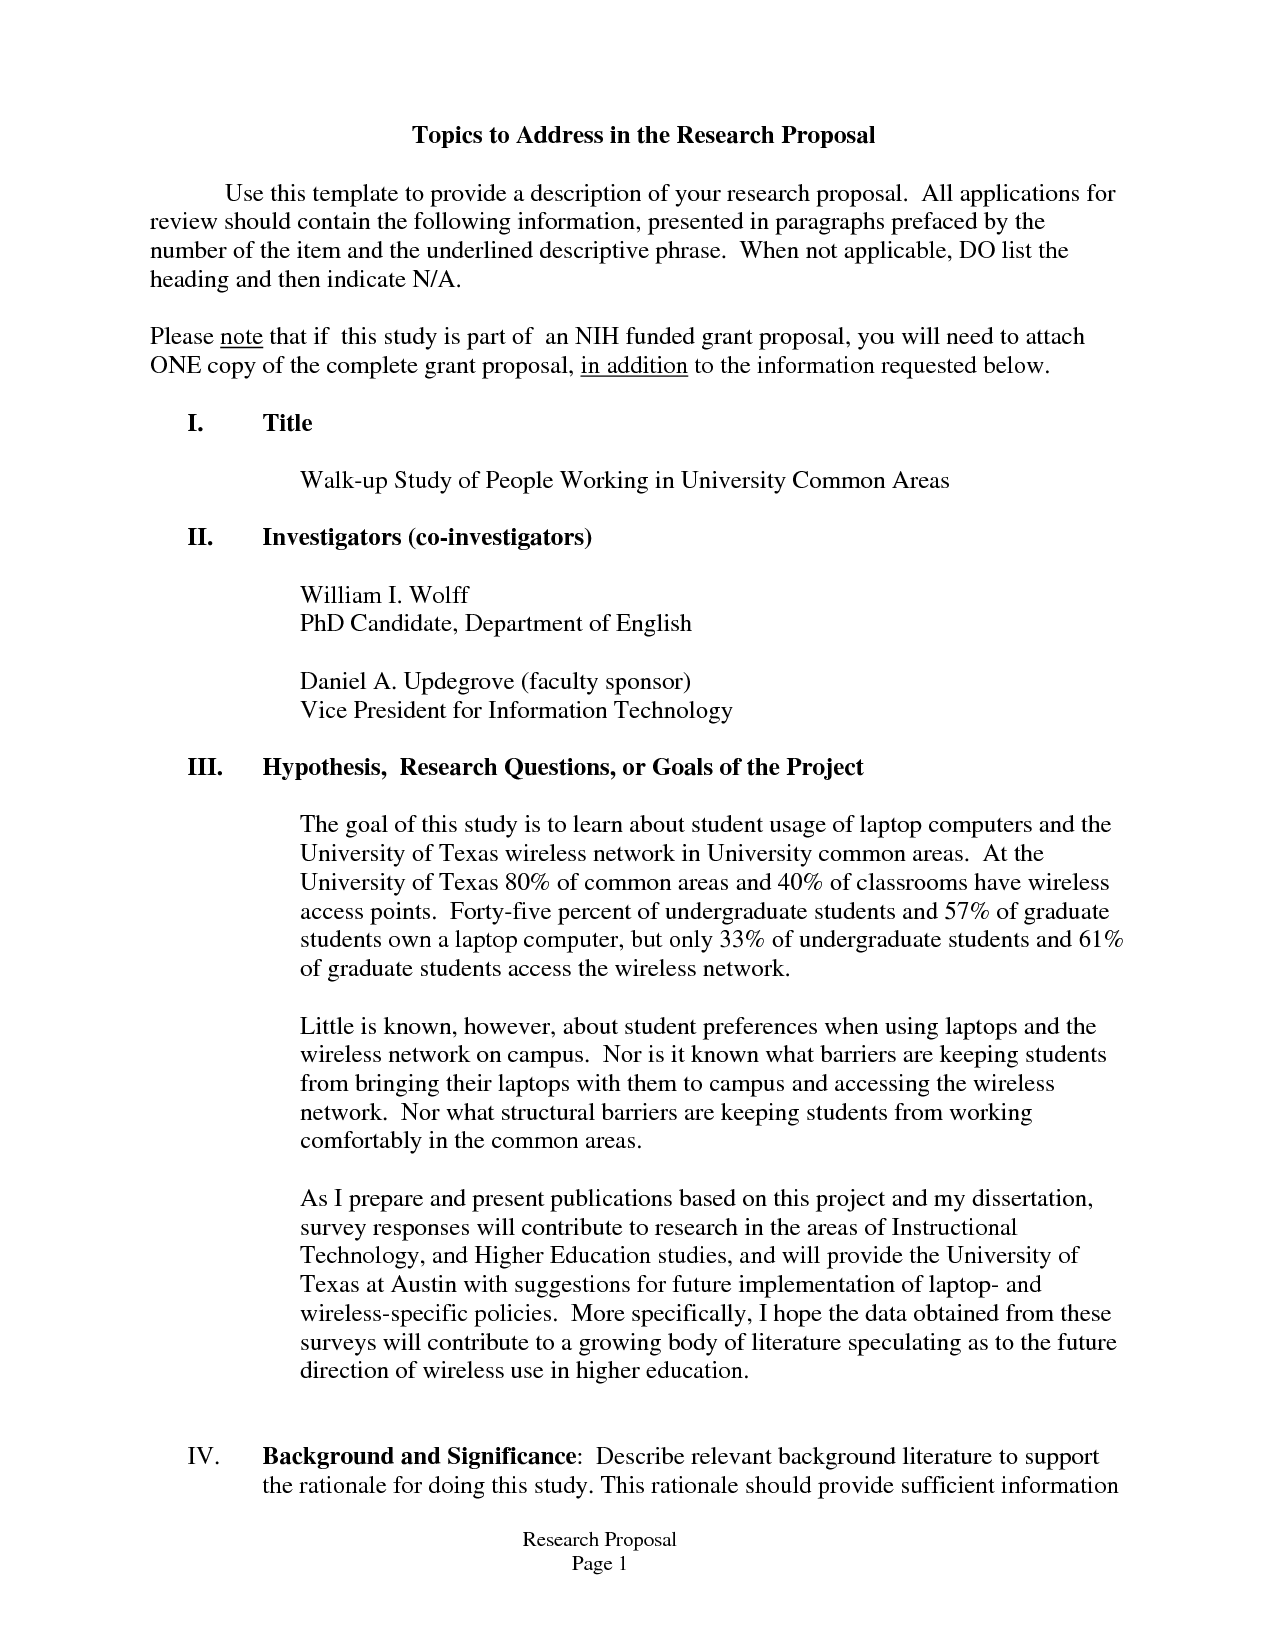 Example Of English Essay Proposal Argument Essay Examples Commonpenceco Proposal Argument Essay  Examples Essay On Health Care also Proposal Argument Essay Examples Persuasive Essay Topics High School Students Analytical Essay  Romeo And Juliet Essay Thesis